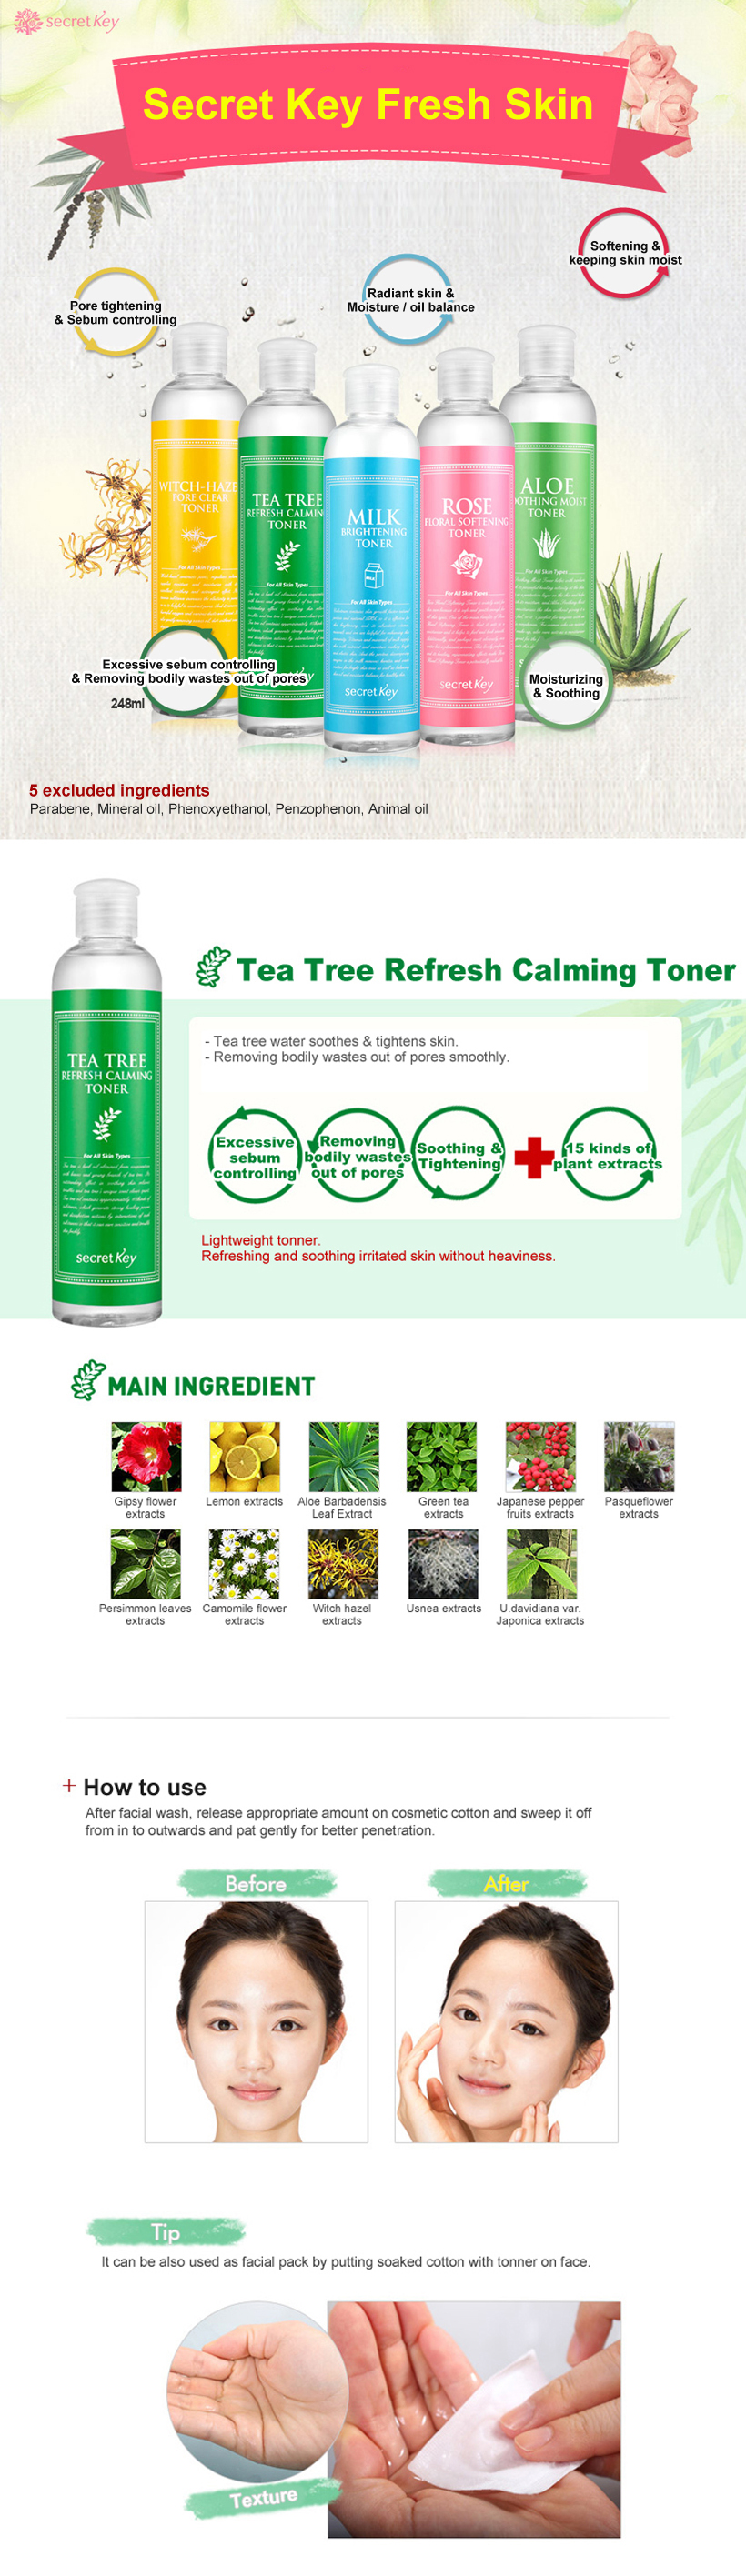 [ SECRET KEY ] Tea Tree Refresh Calming Toner 248ml